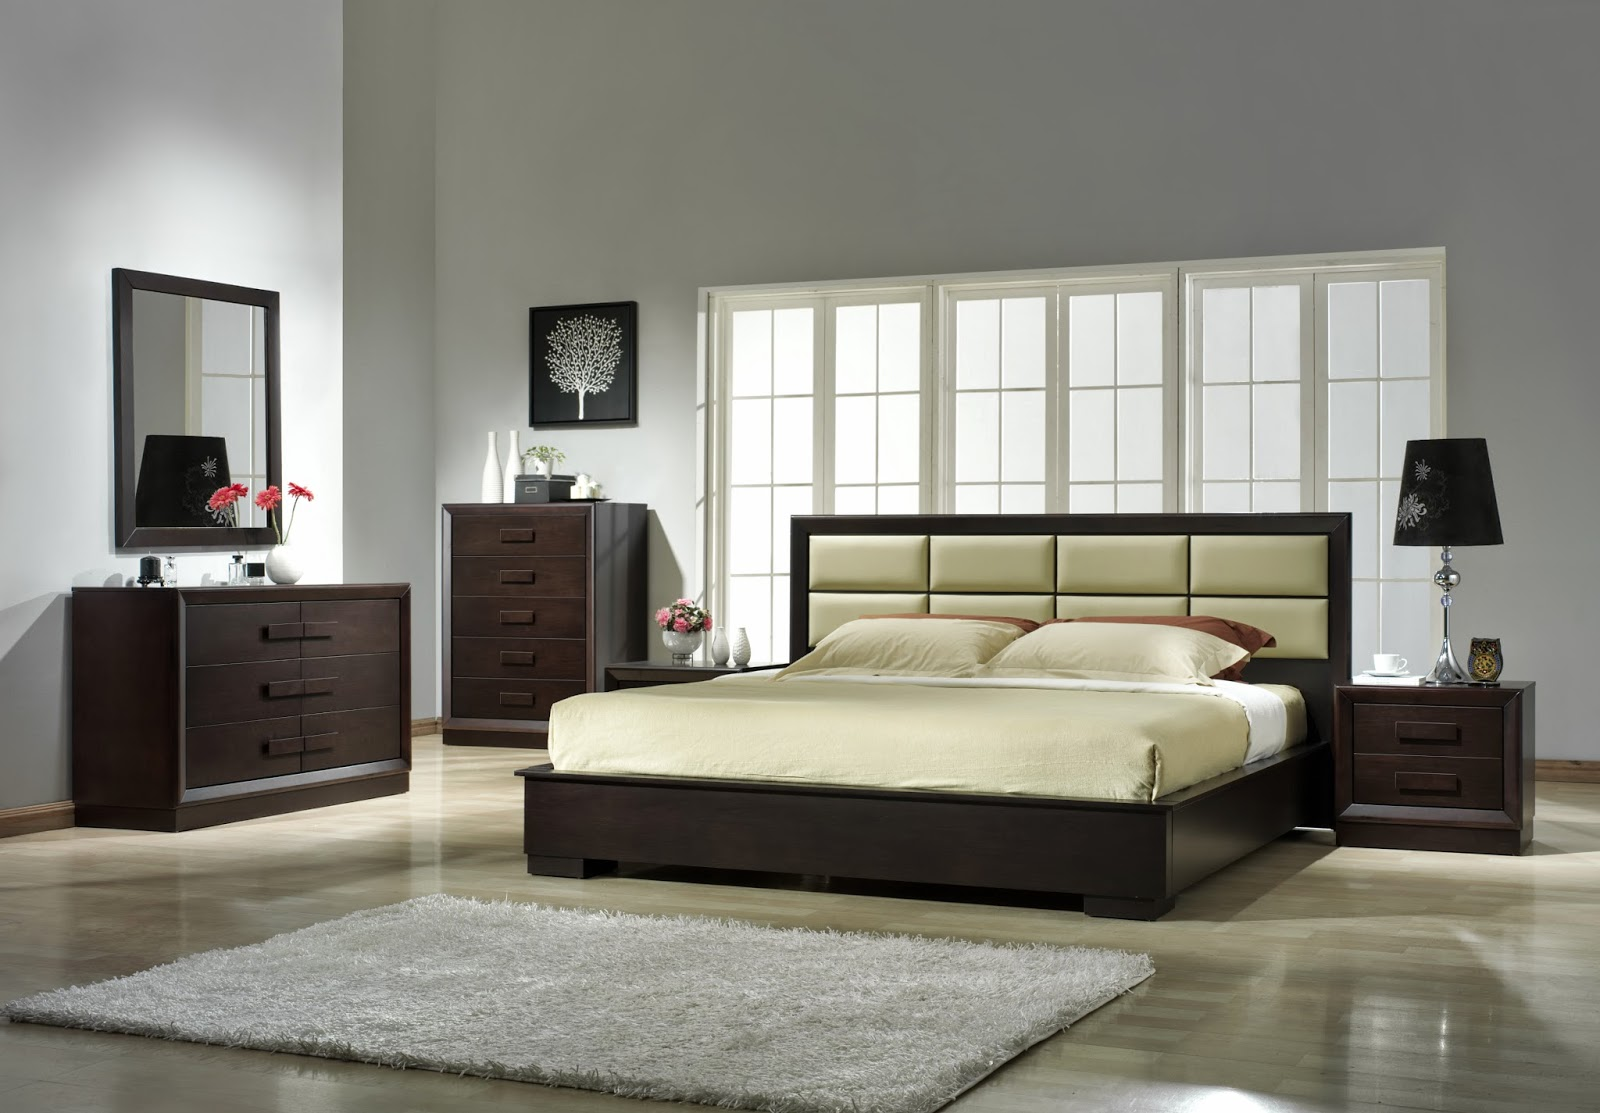 Cheapest bedroom furniture popular interior house ideas for Affordable modern bedroom sets